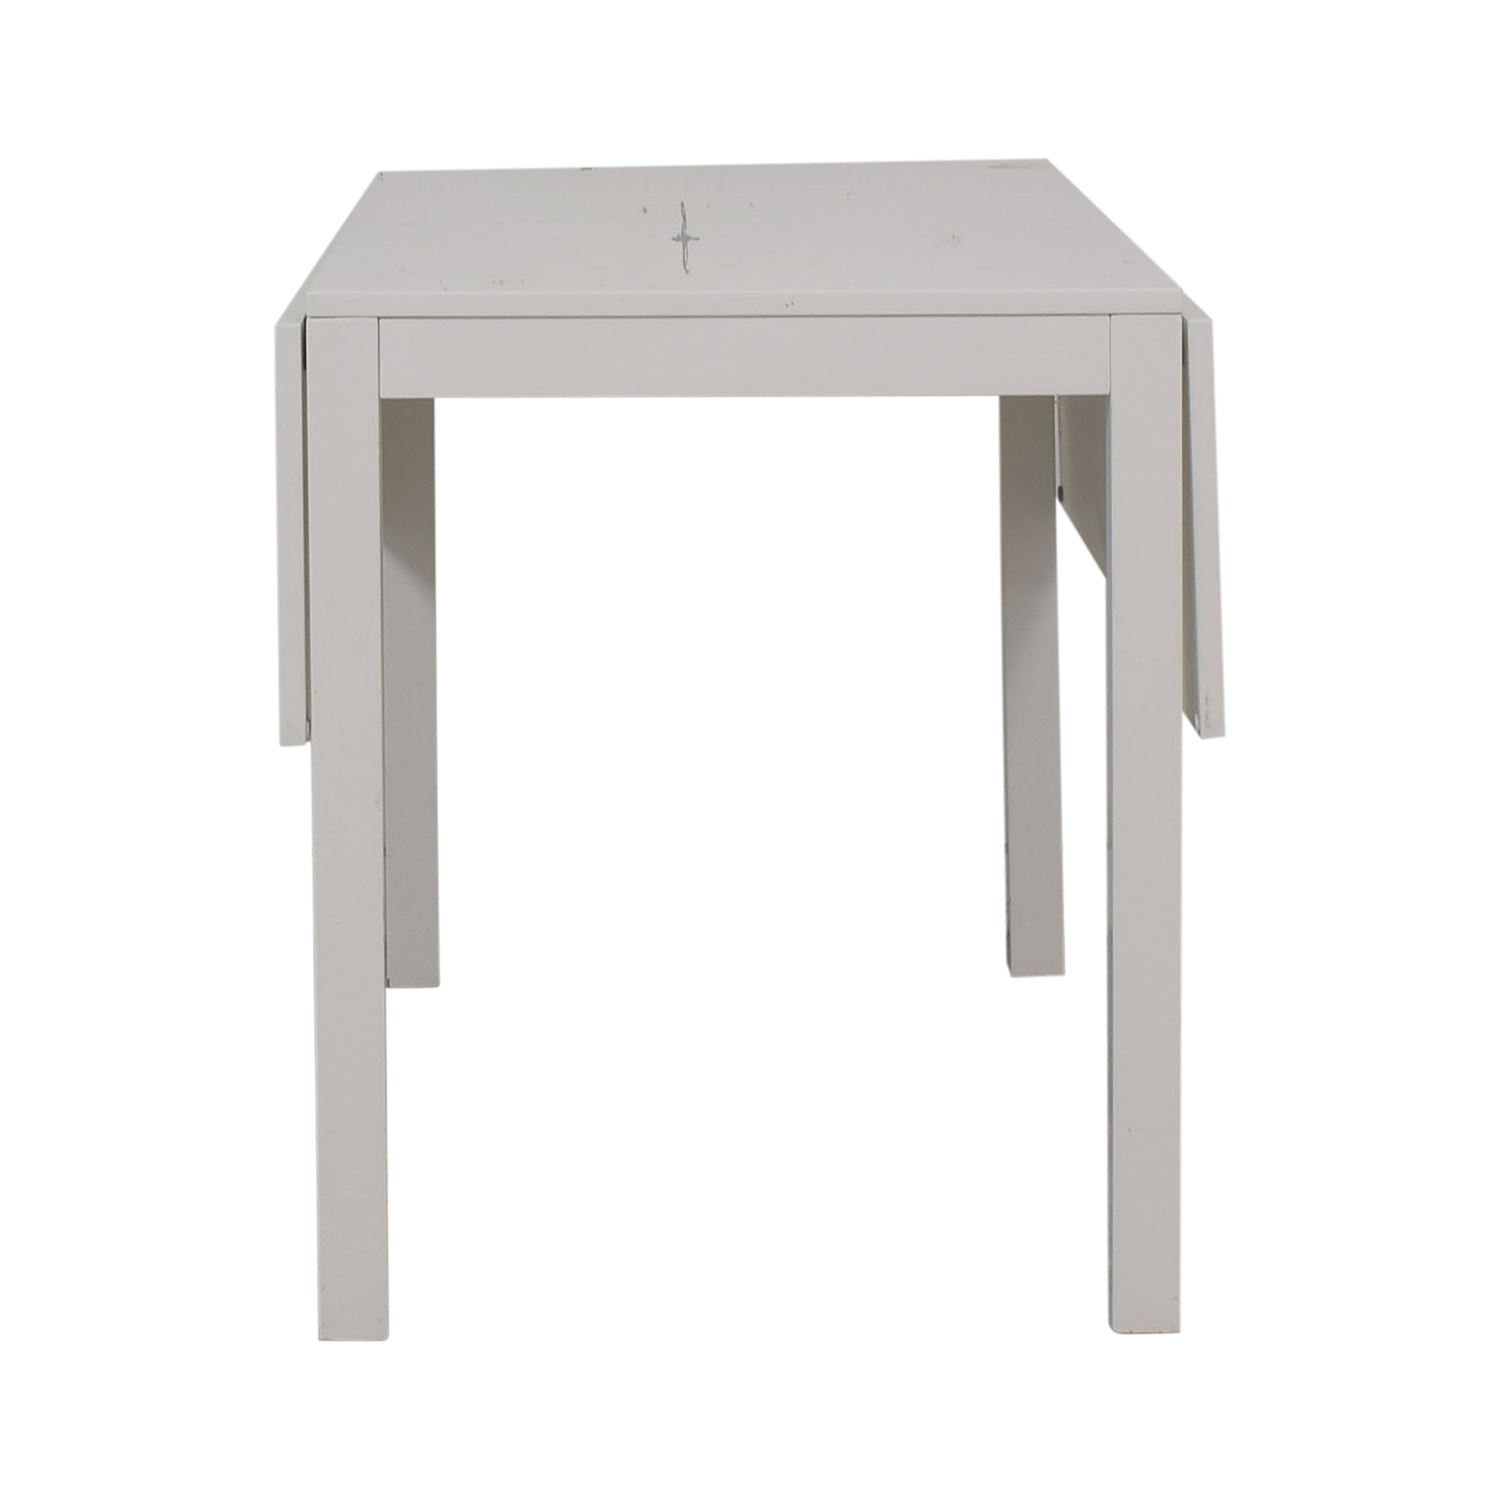 CB2 CB2 Drop Leaf Table price